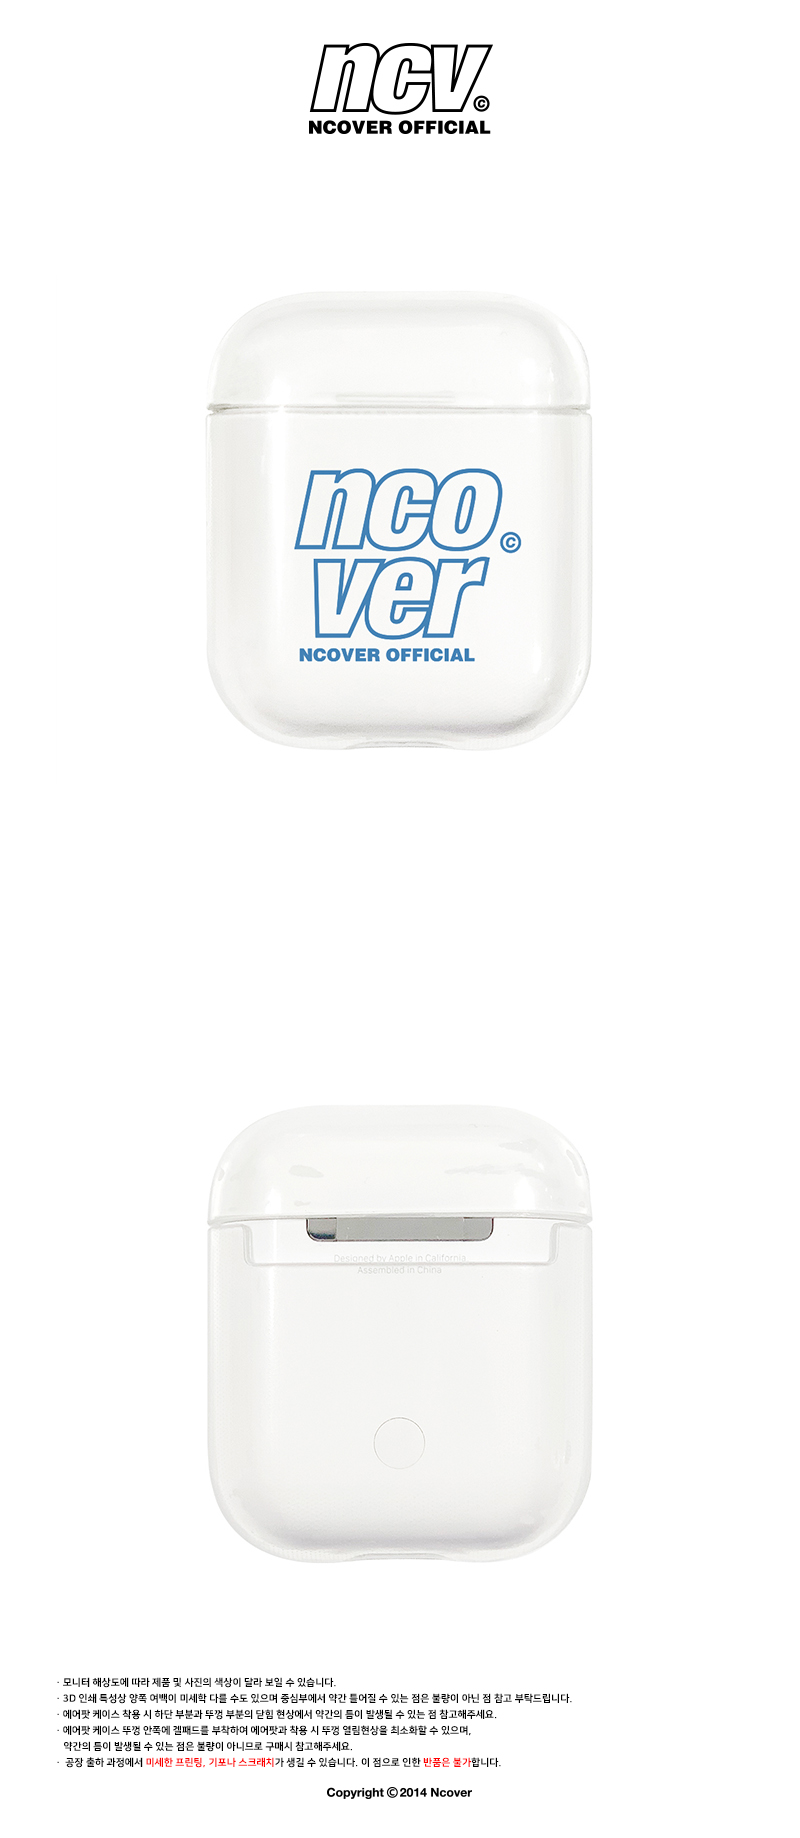 Double line logo case-clear(airpods case).jpg